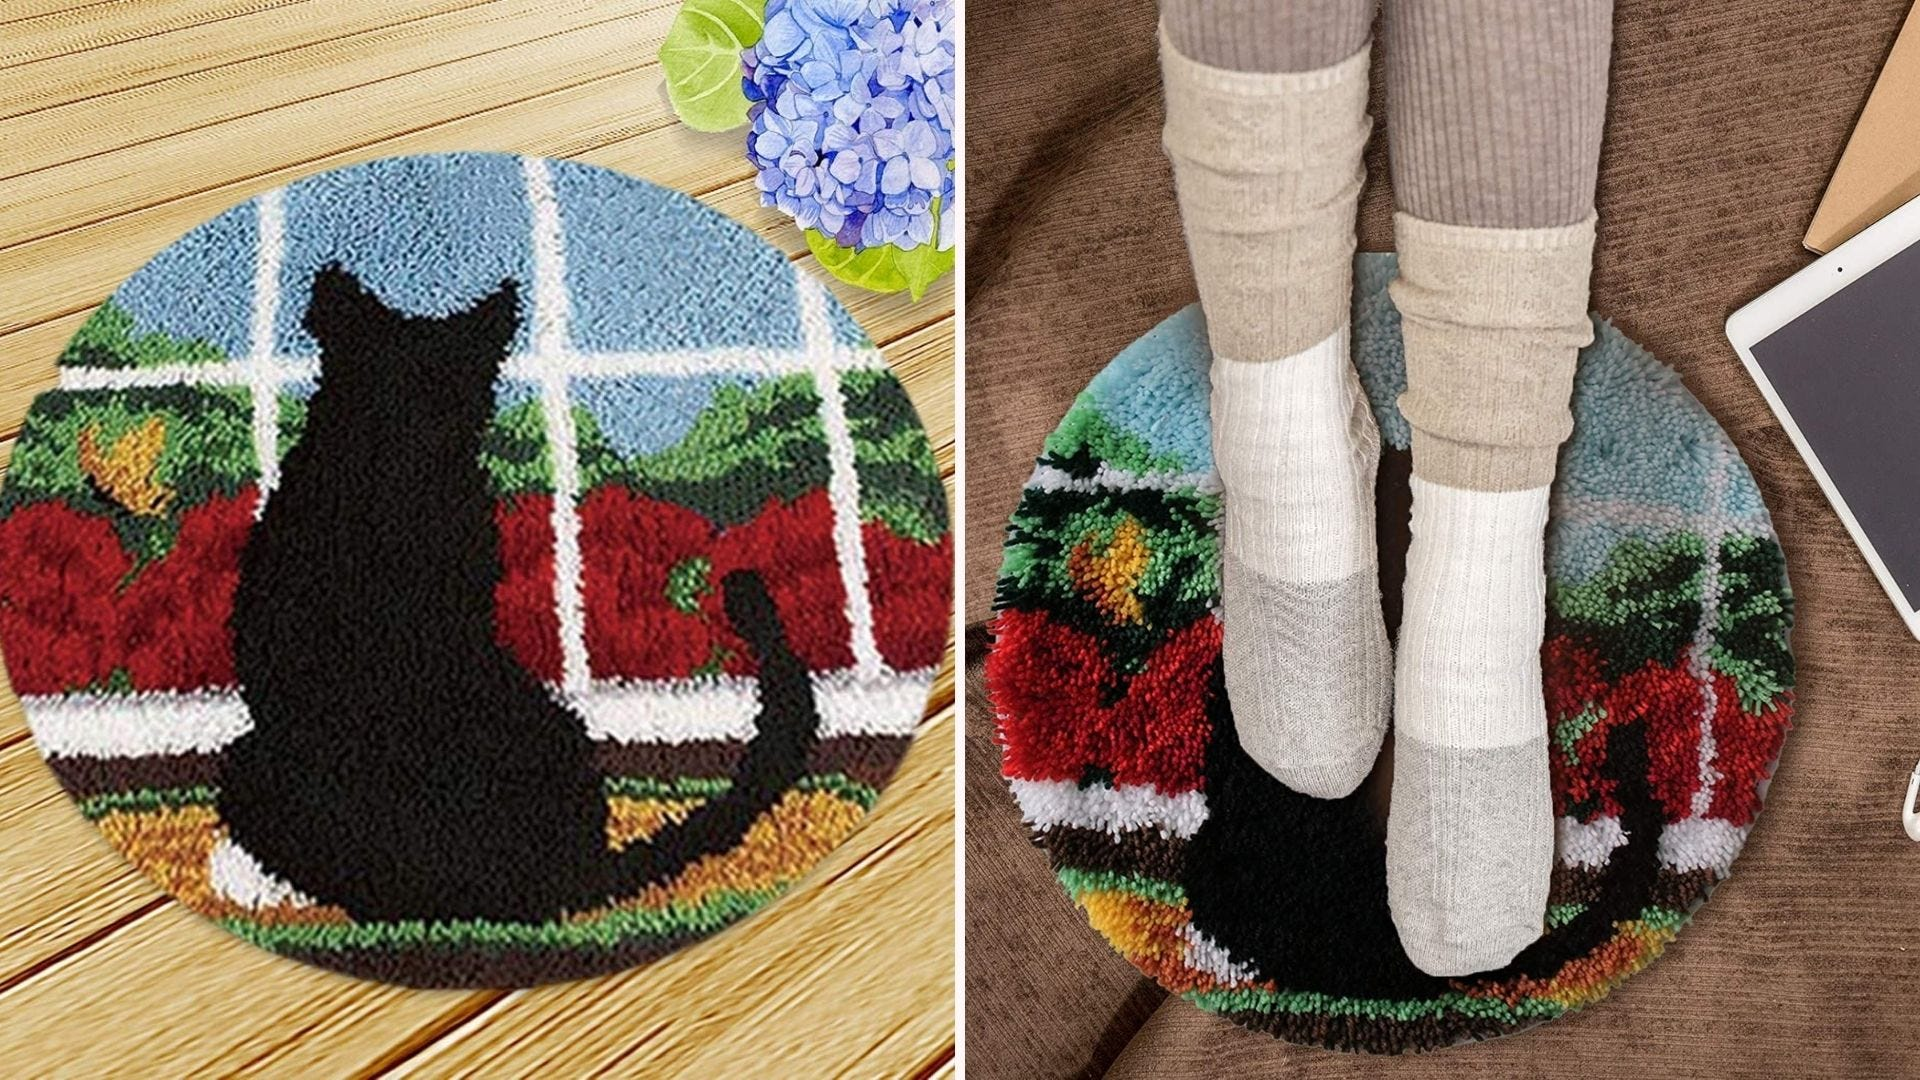 a round yarn rug with a cat design on it; two feet with socks rest on the rug